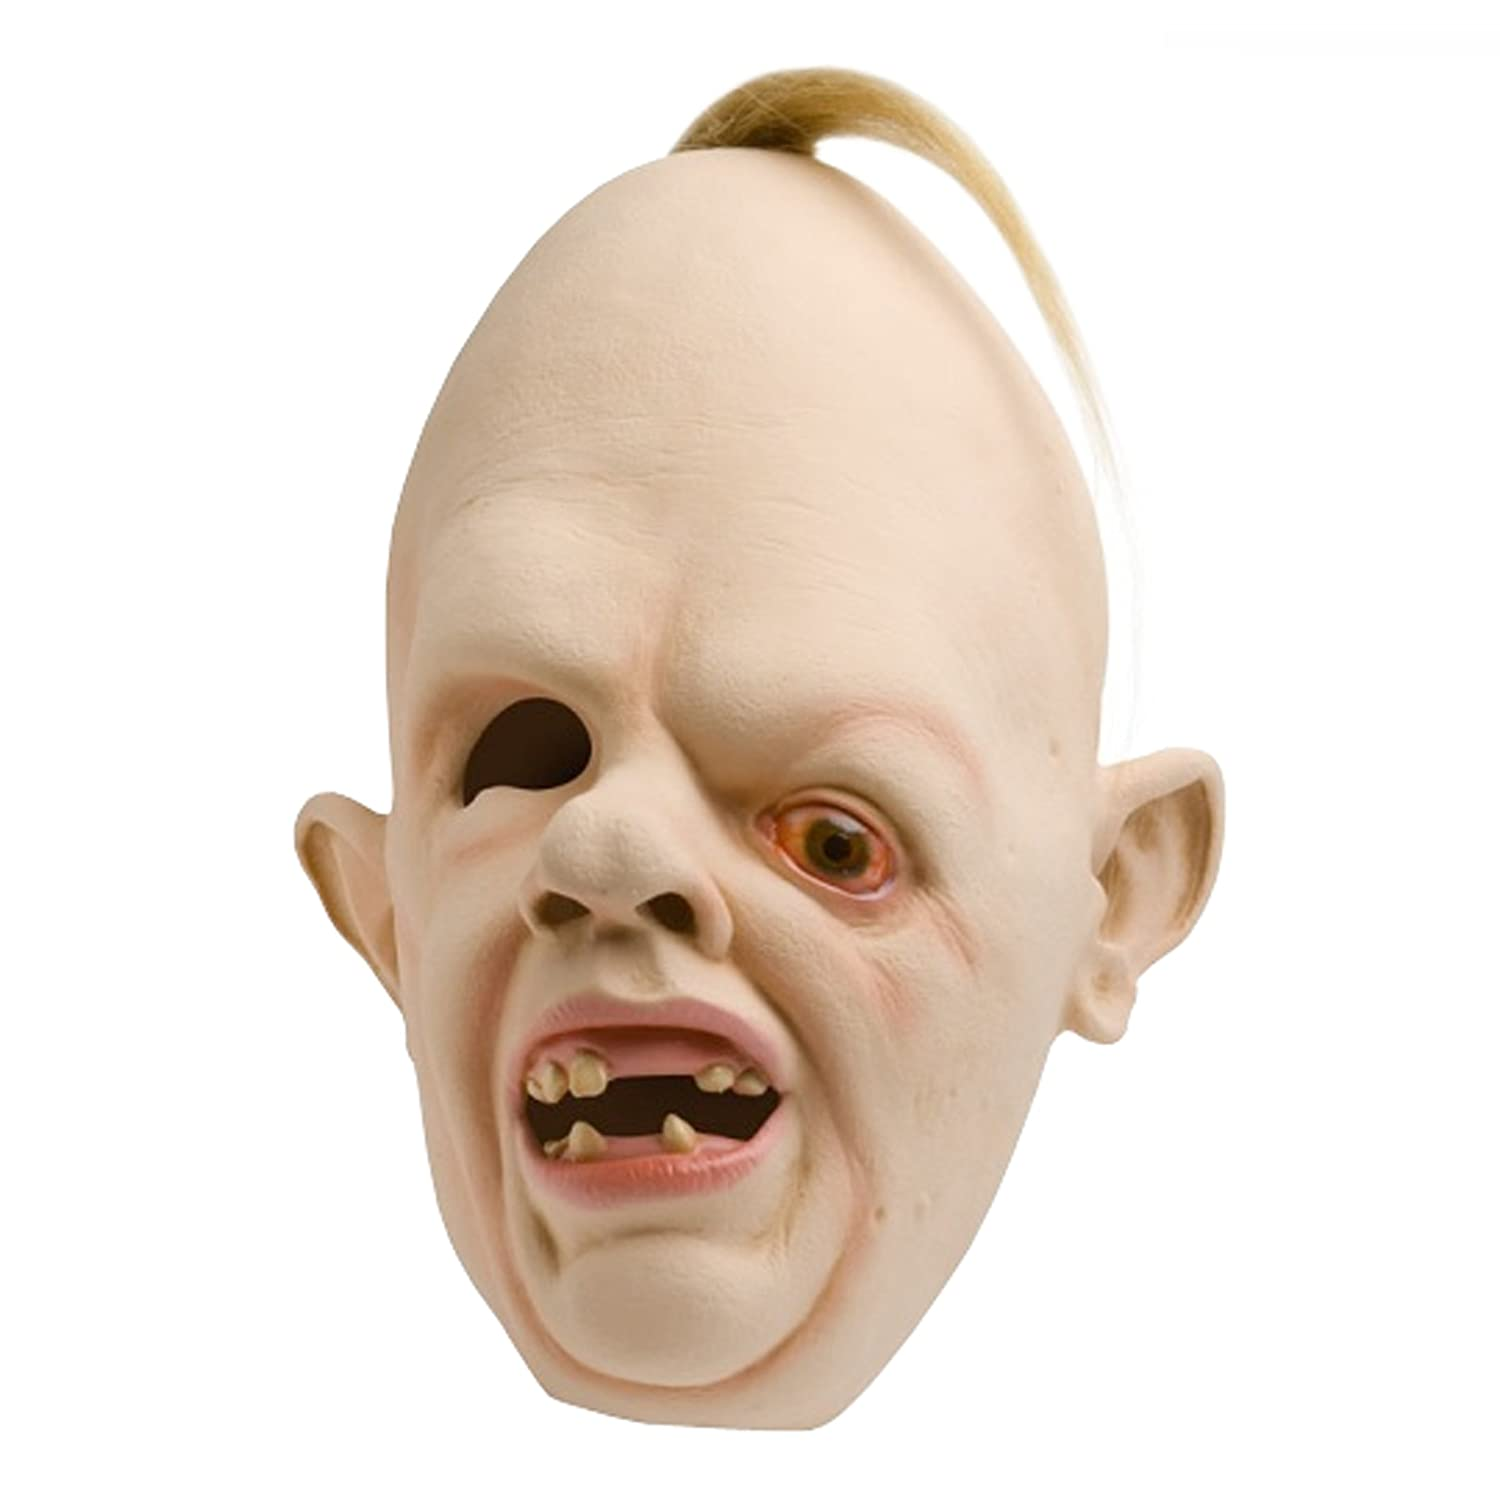 The Goonies Sloth Mask Off the Wall Toys